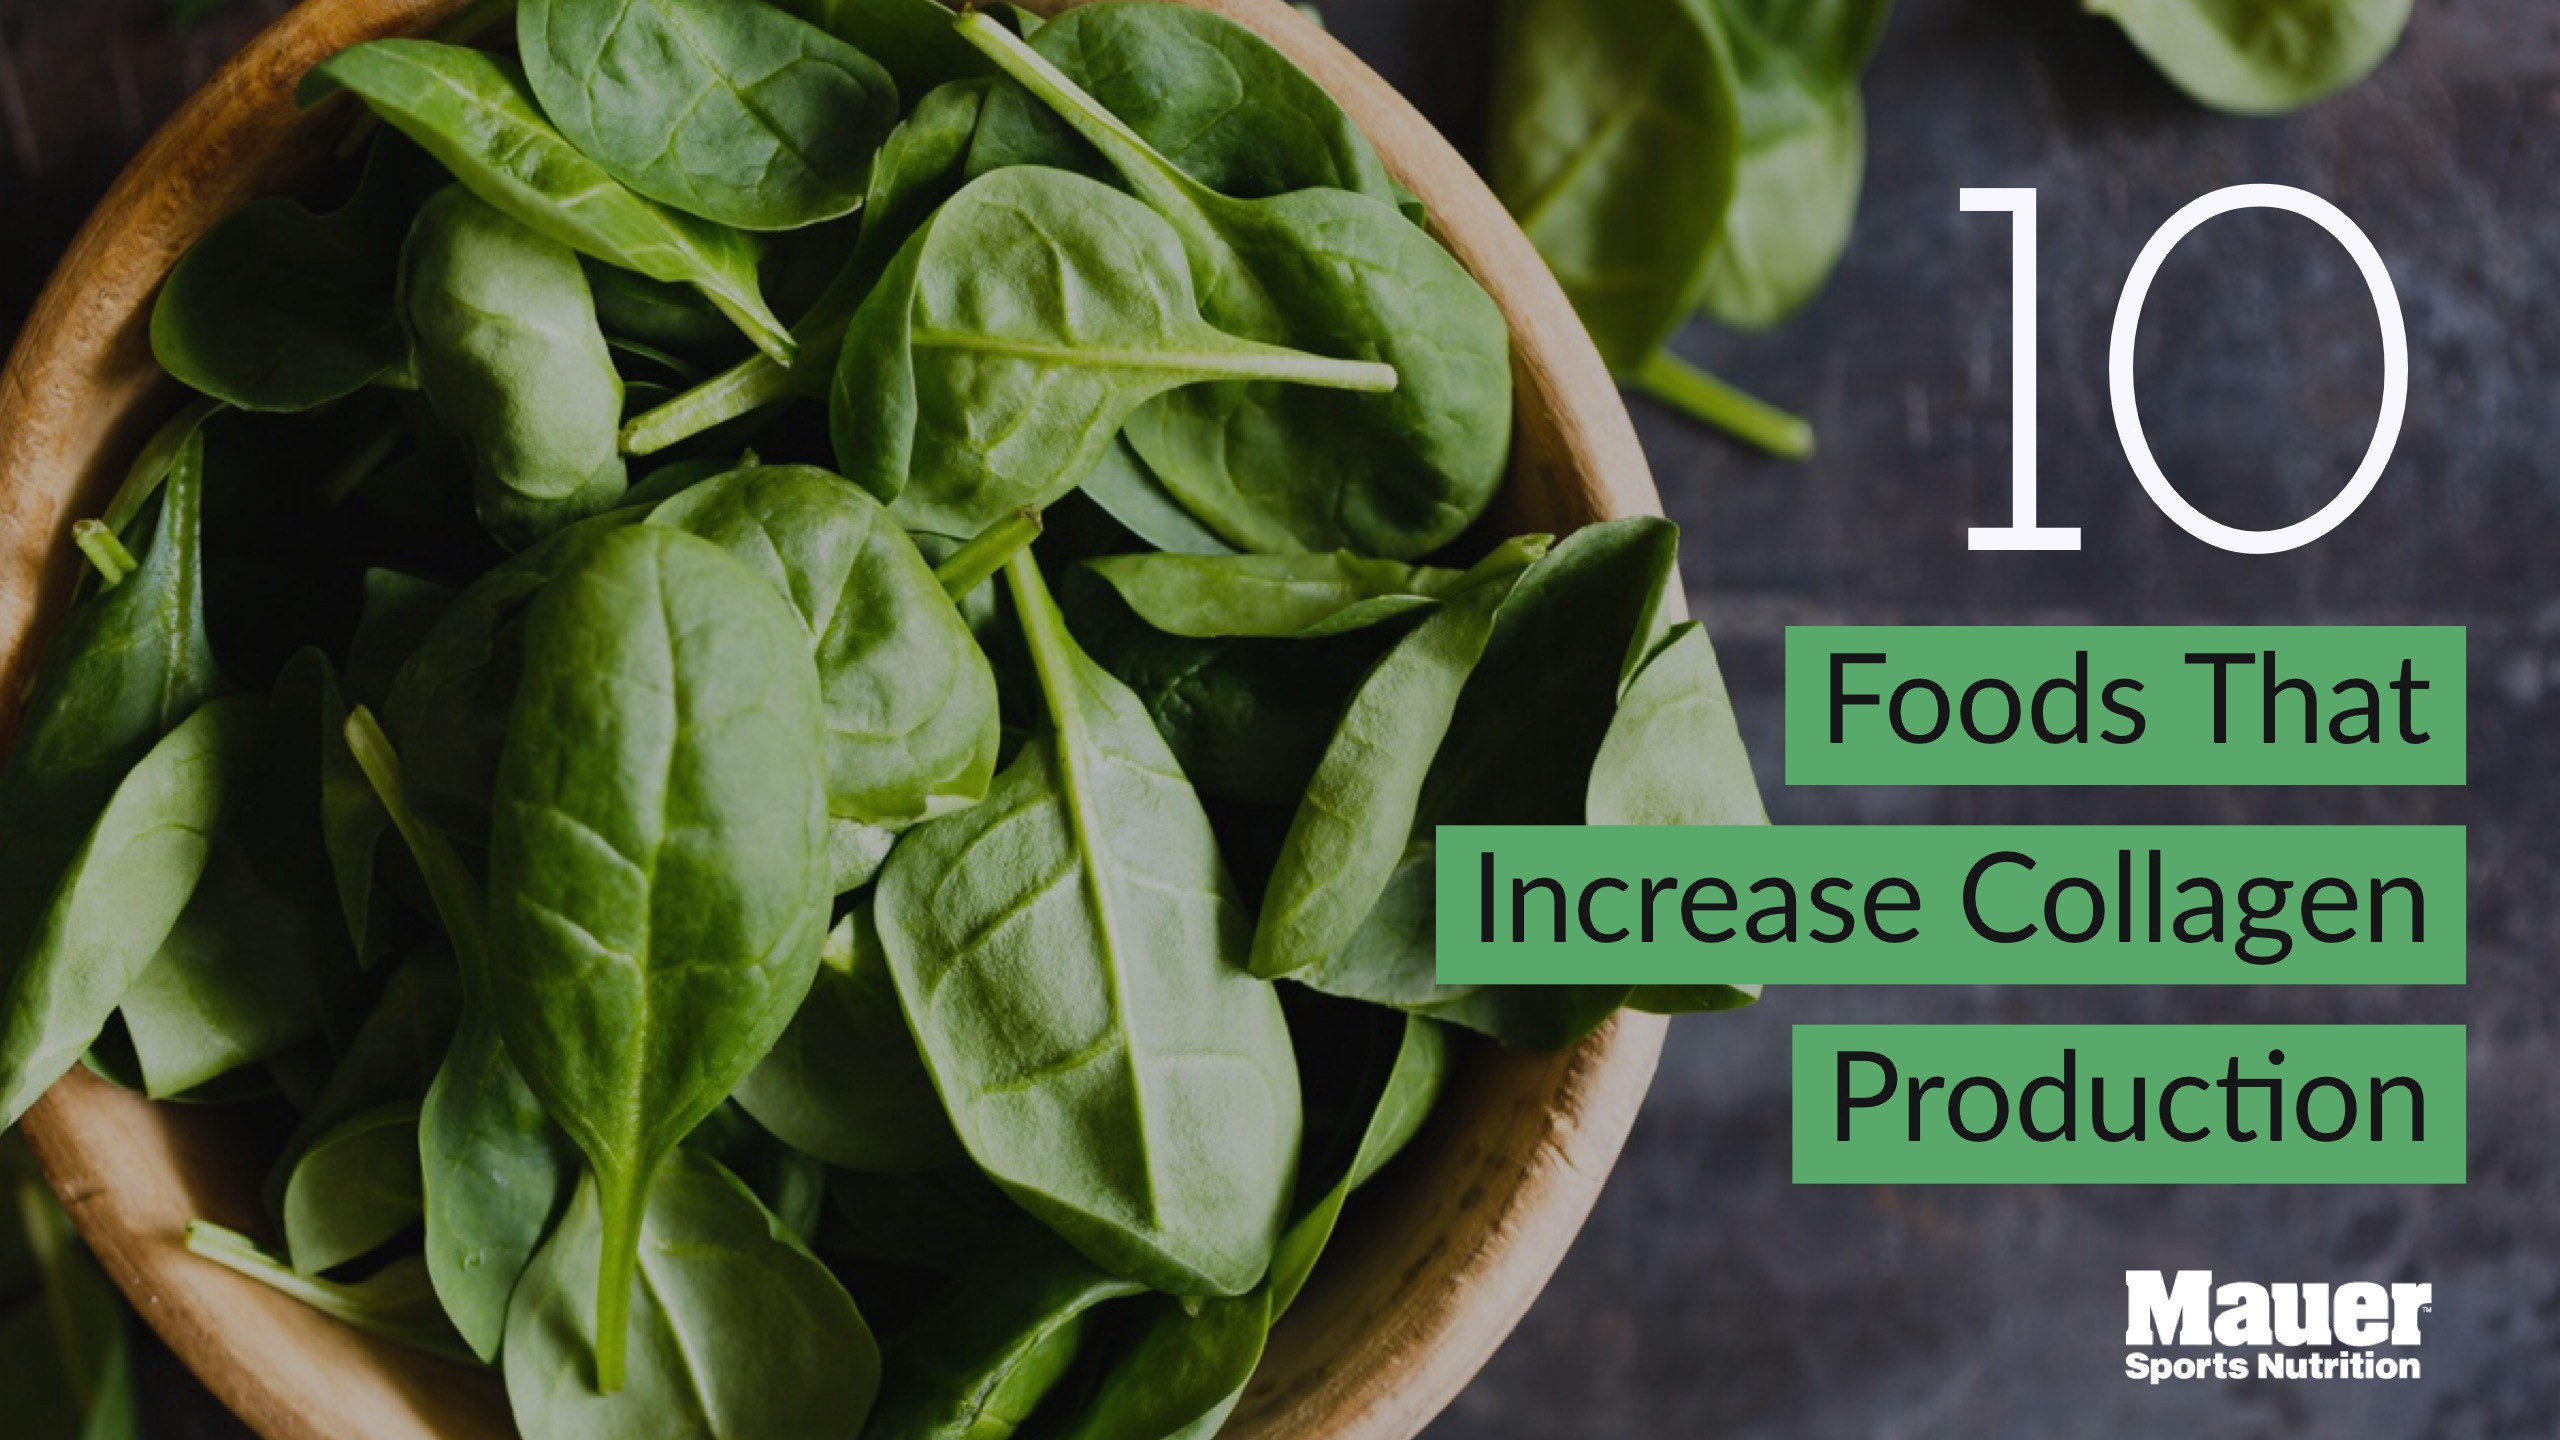 10 Foods That Increase Collagen Production - Mauer Sports